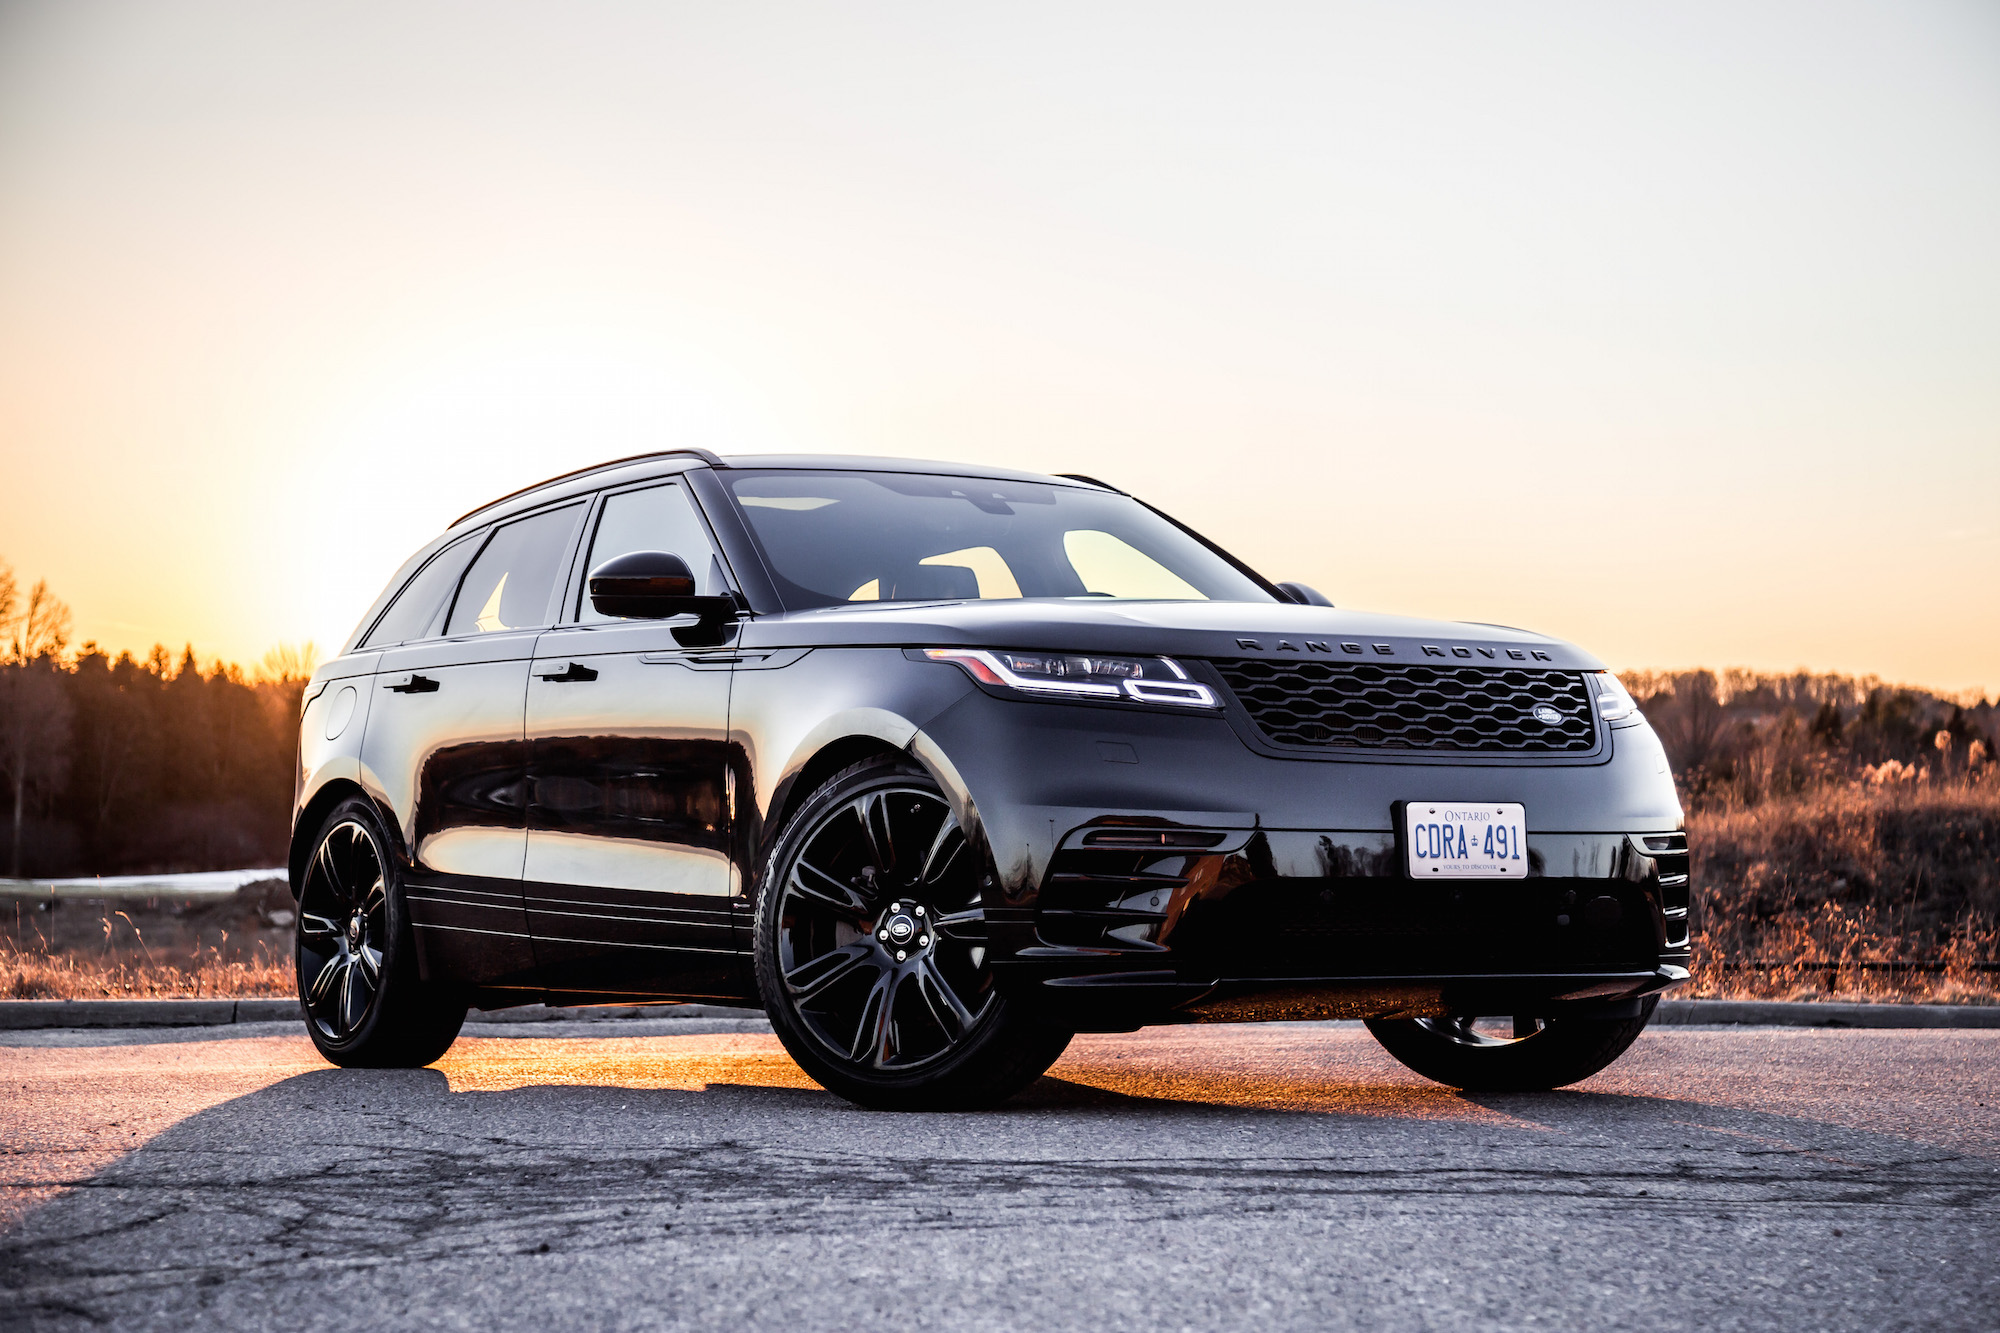 2018 Range Rover Velar P380 - Words/Photography: Calvin ChanThis is the new Velar, a five-seater SUV that carves out a fresh niche in the Range Rover portfolio, sitting in between the smaller Evoque and the larger Sport in both size and price. The Velar creates a happy medium in the roughly attainable $60,000 - $90,000.... Read more